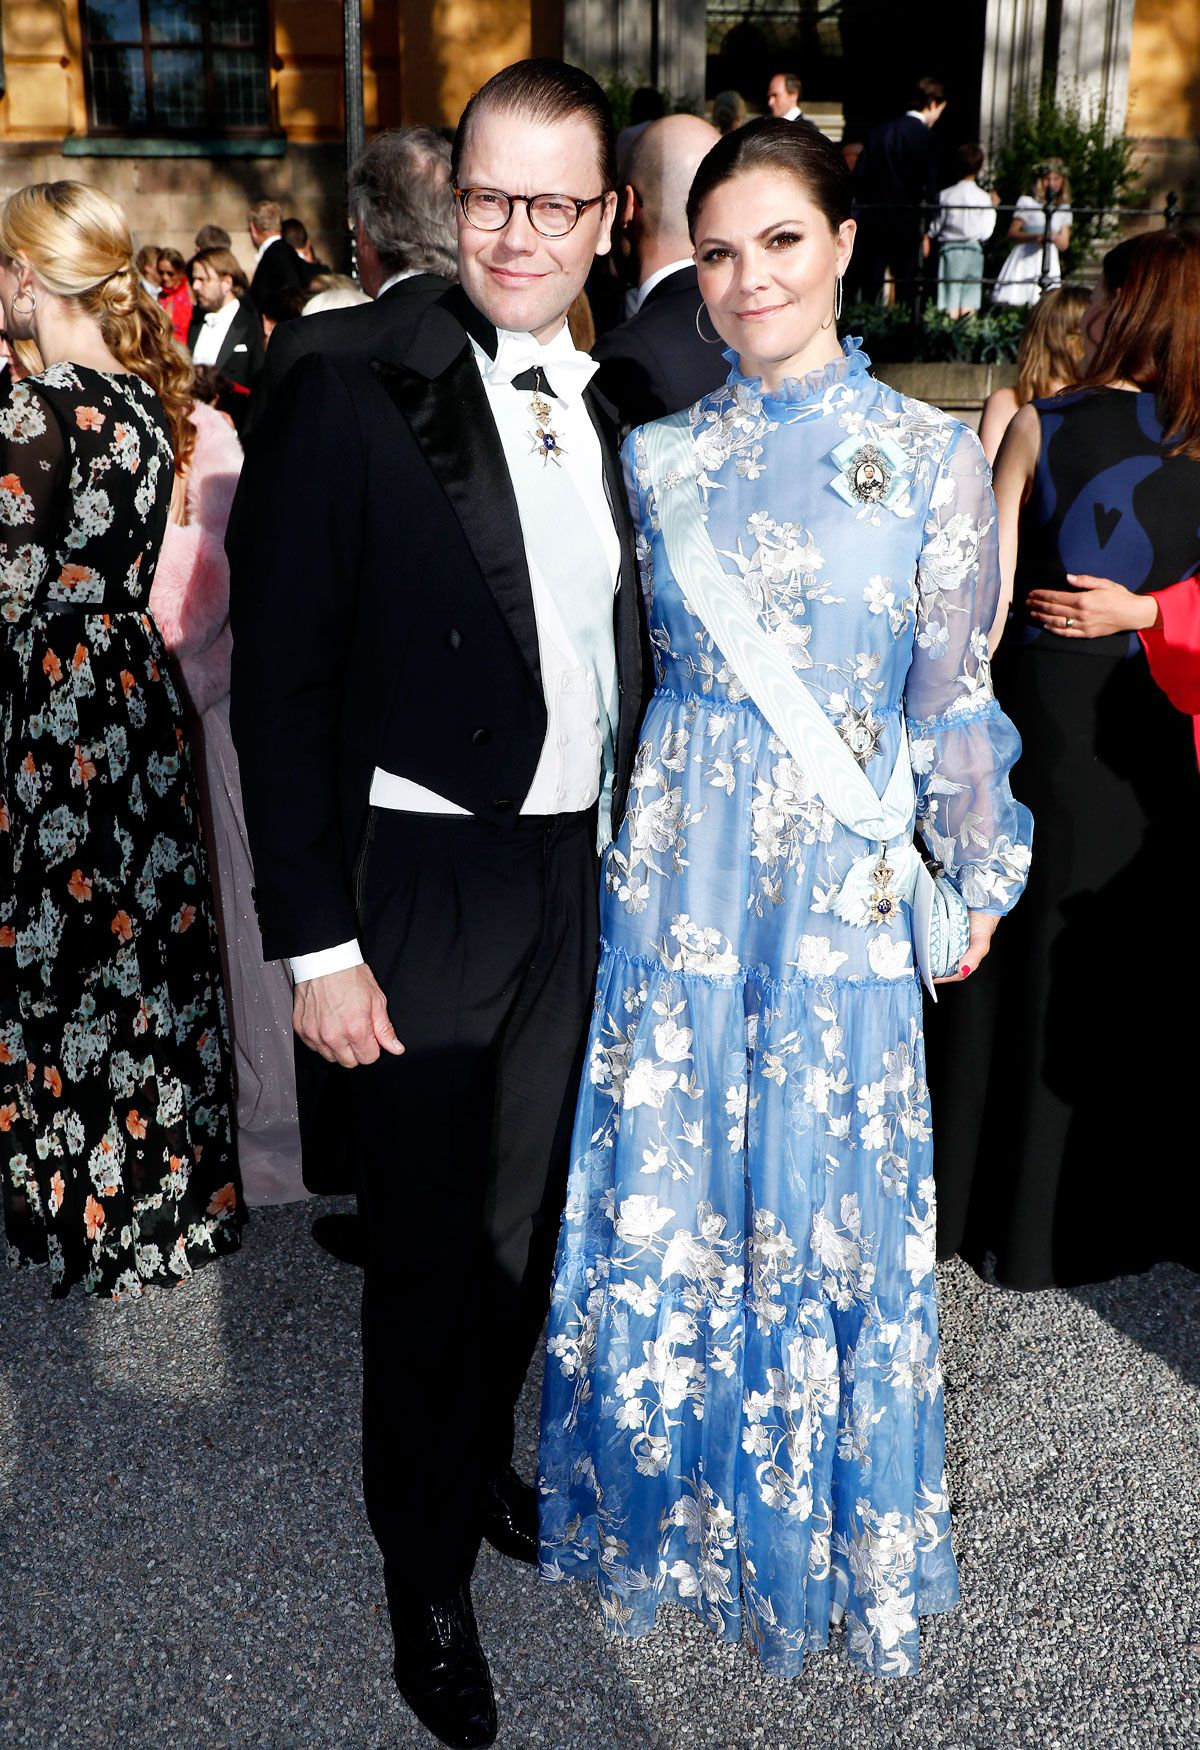 Prince Daniel and Crown Princess Victoria of Sweden attend a wedding at the  Hedvig Eleonora Church on 12 May 2018 in Stockholm b91a5f7049761